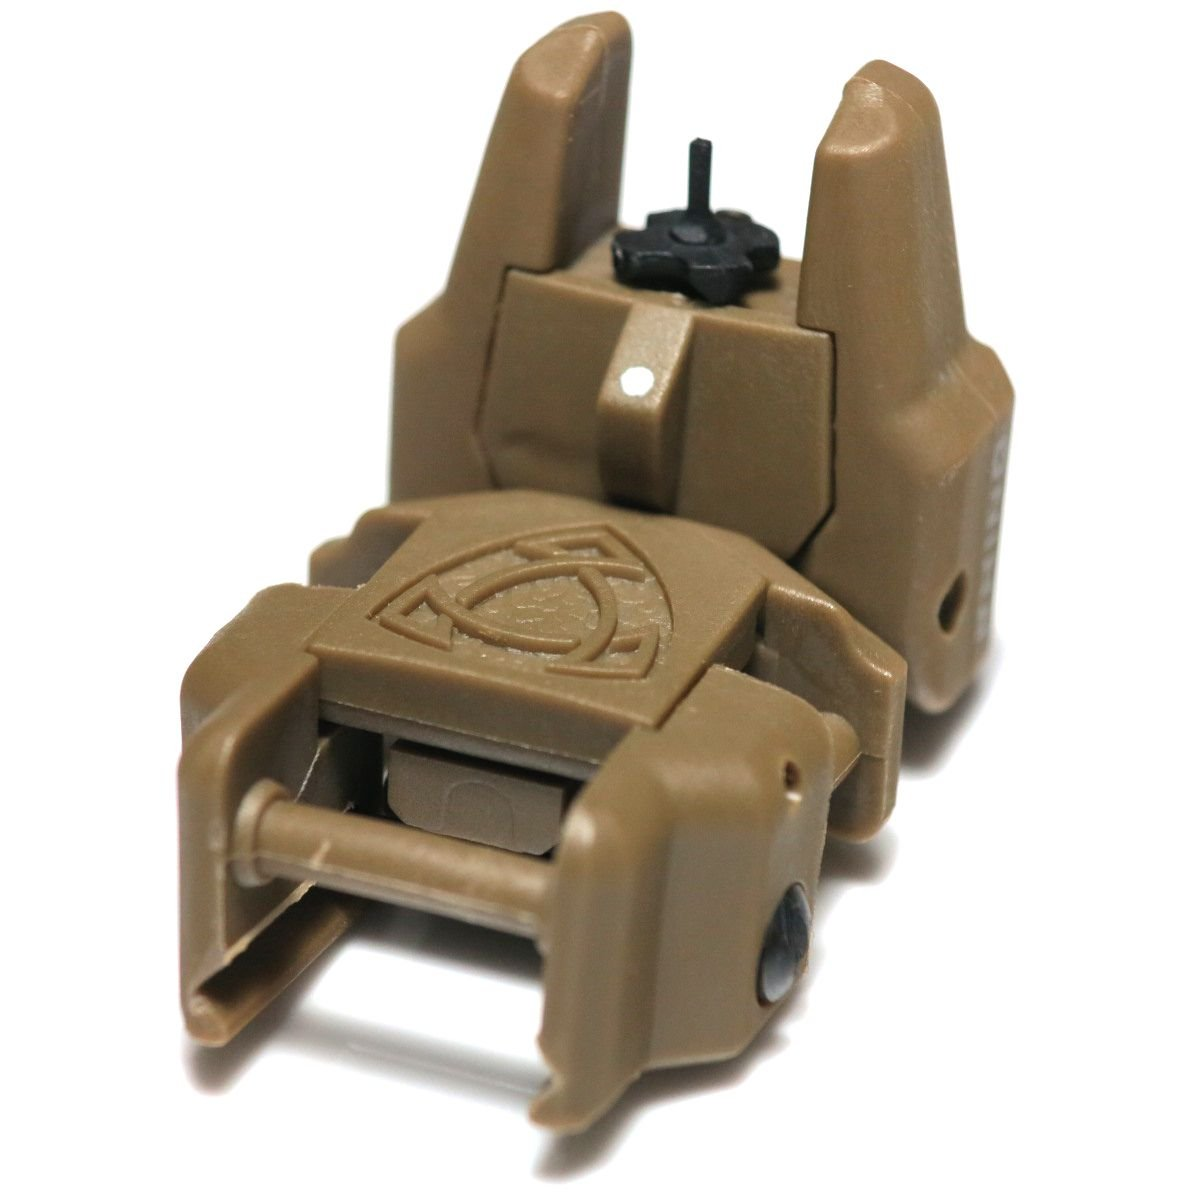 Airsoft Wargame Tactical Shooting Gear APS GG038D Rhino Auxiliary Flip Up Front Sight Desert Tan Brown